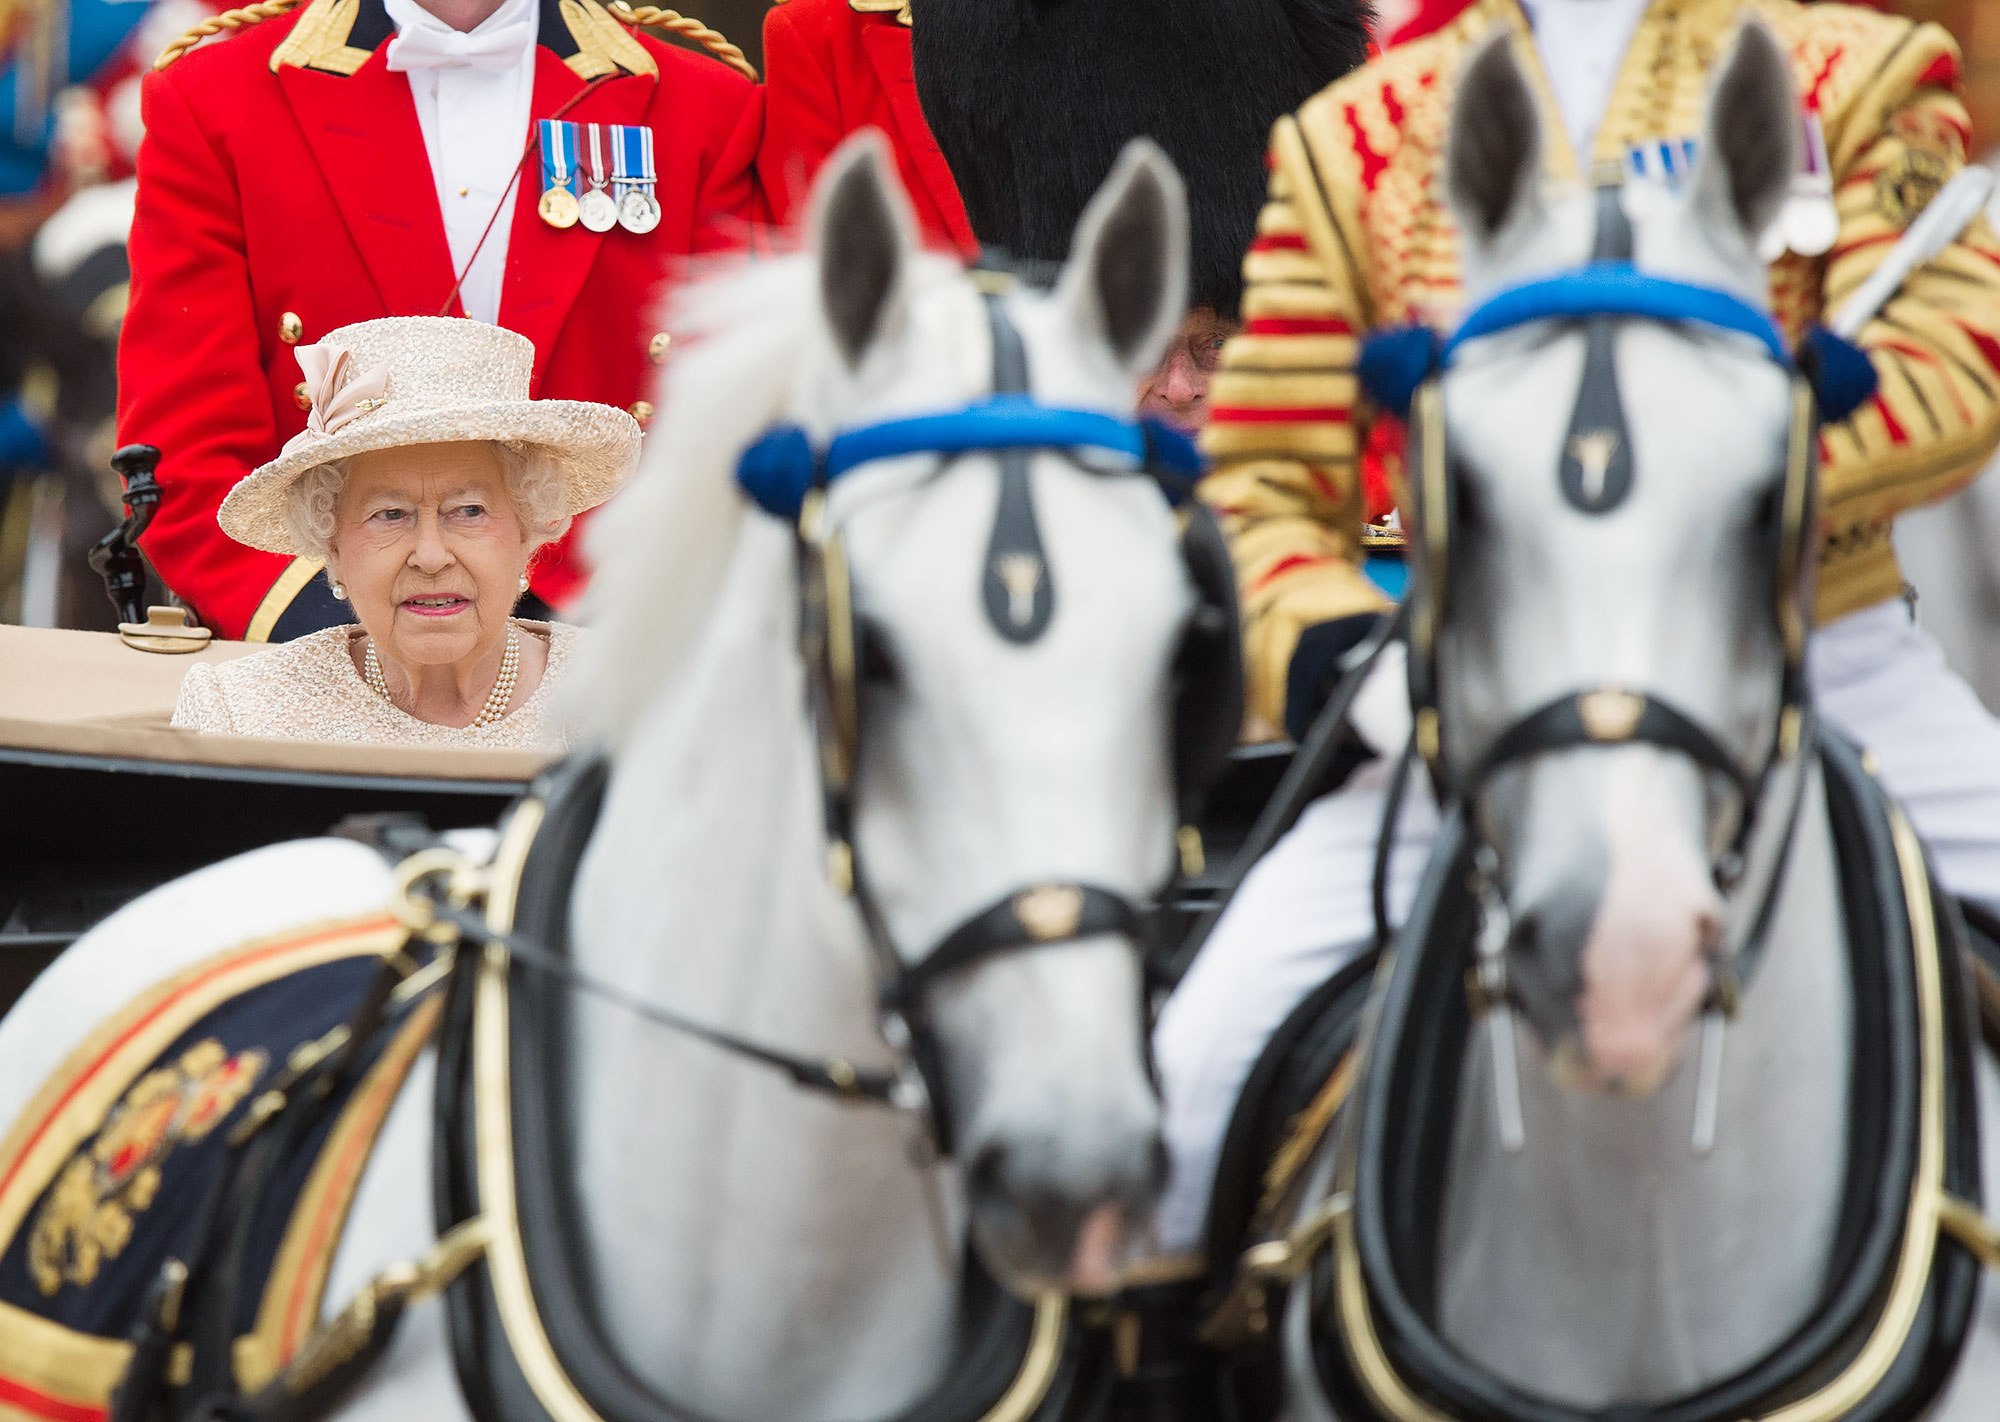 LONDON, ENGLAND - JUNE 13: Queen Elizabeth II rides in a carriage as she attends the annual Trooping The Colour ceremony at Horse Guards Parade on June 13, 2015 in London, England. (Photo by Samir Hussein/WireImage)